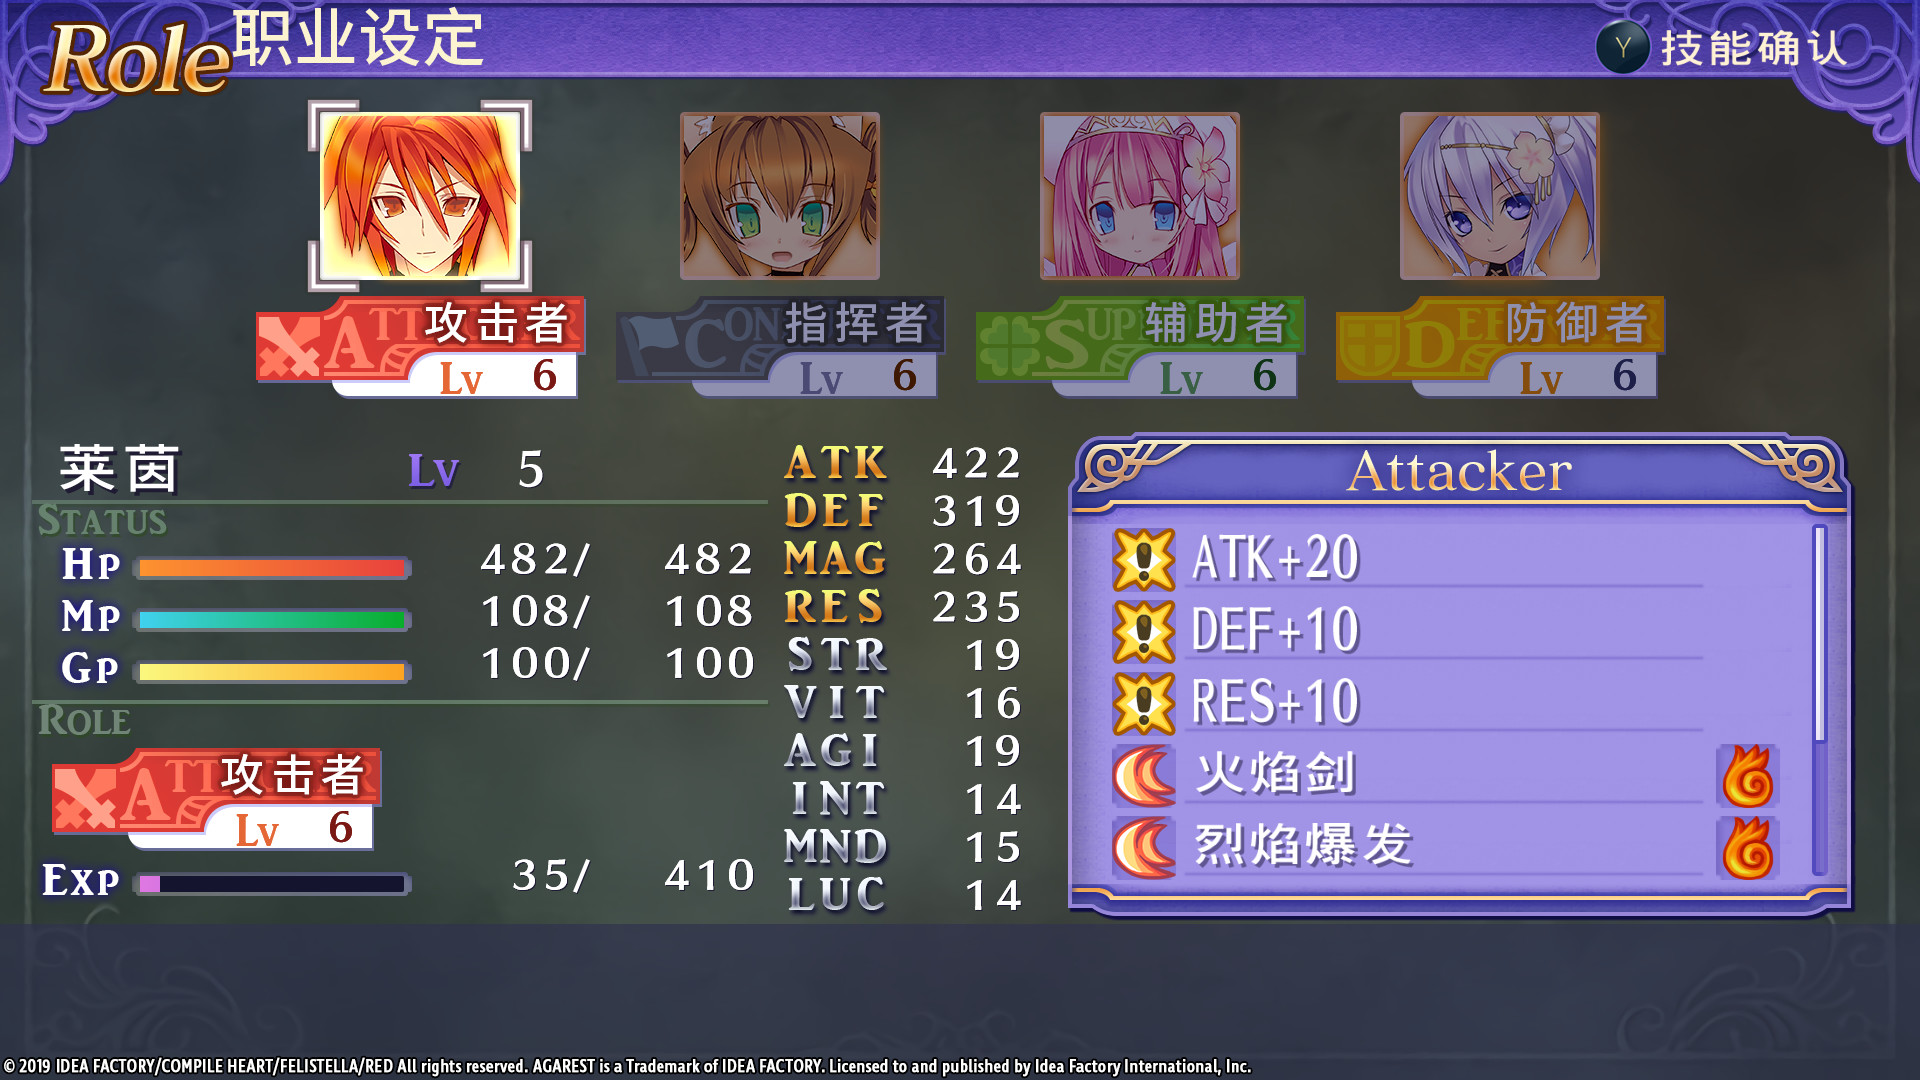 阿加雷斯特战记:甜蜜新婚/Record of Agarest War Mariage插图9